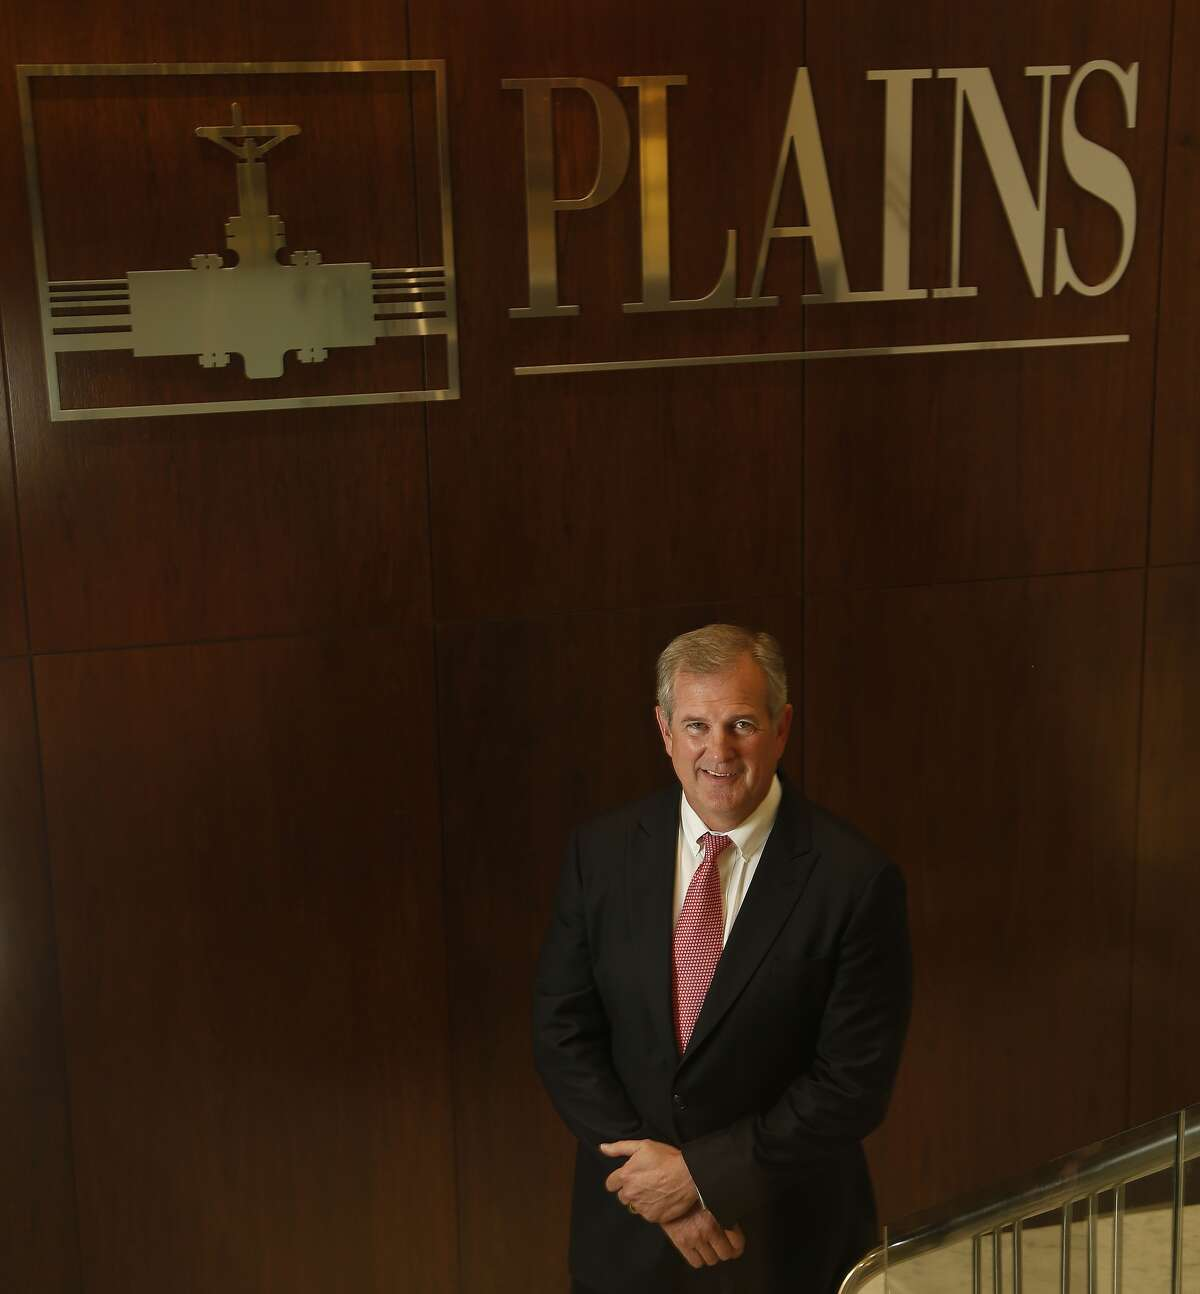 8. Plains GP Holdings LPIndustry: Finances/Oil and gasYear to date stock changes: +55.2 Source: Bloomberg